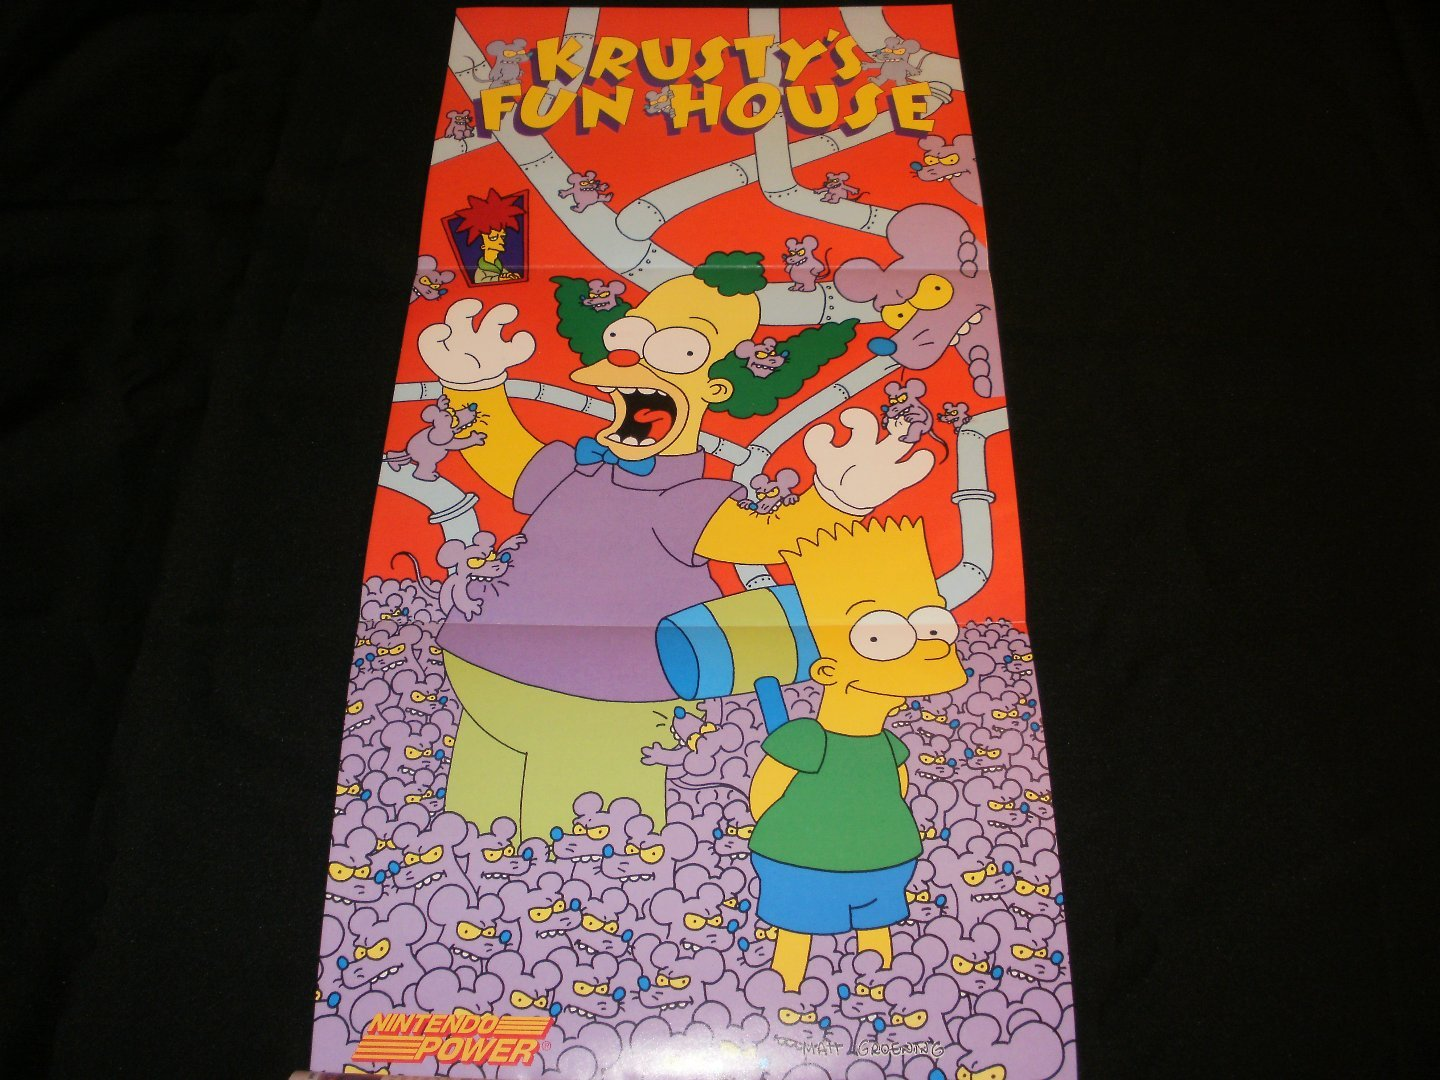 Krusty's Fun House Poster - Nintendo Power May, 1992 - Never Used